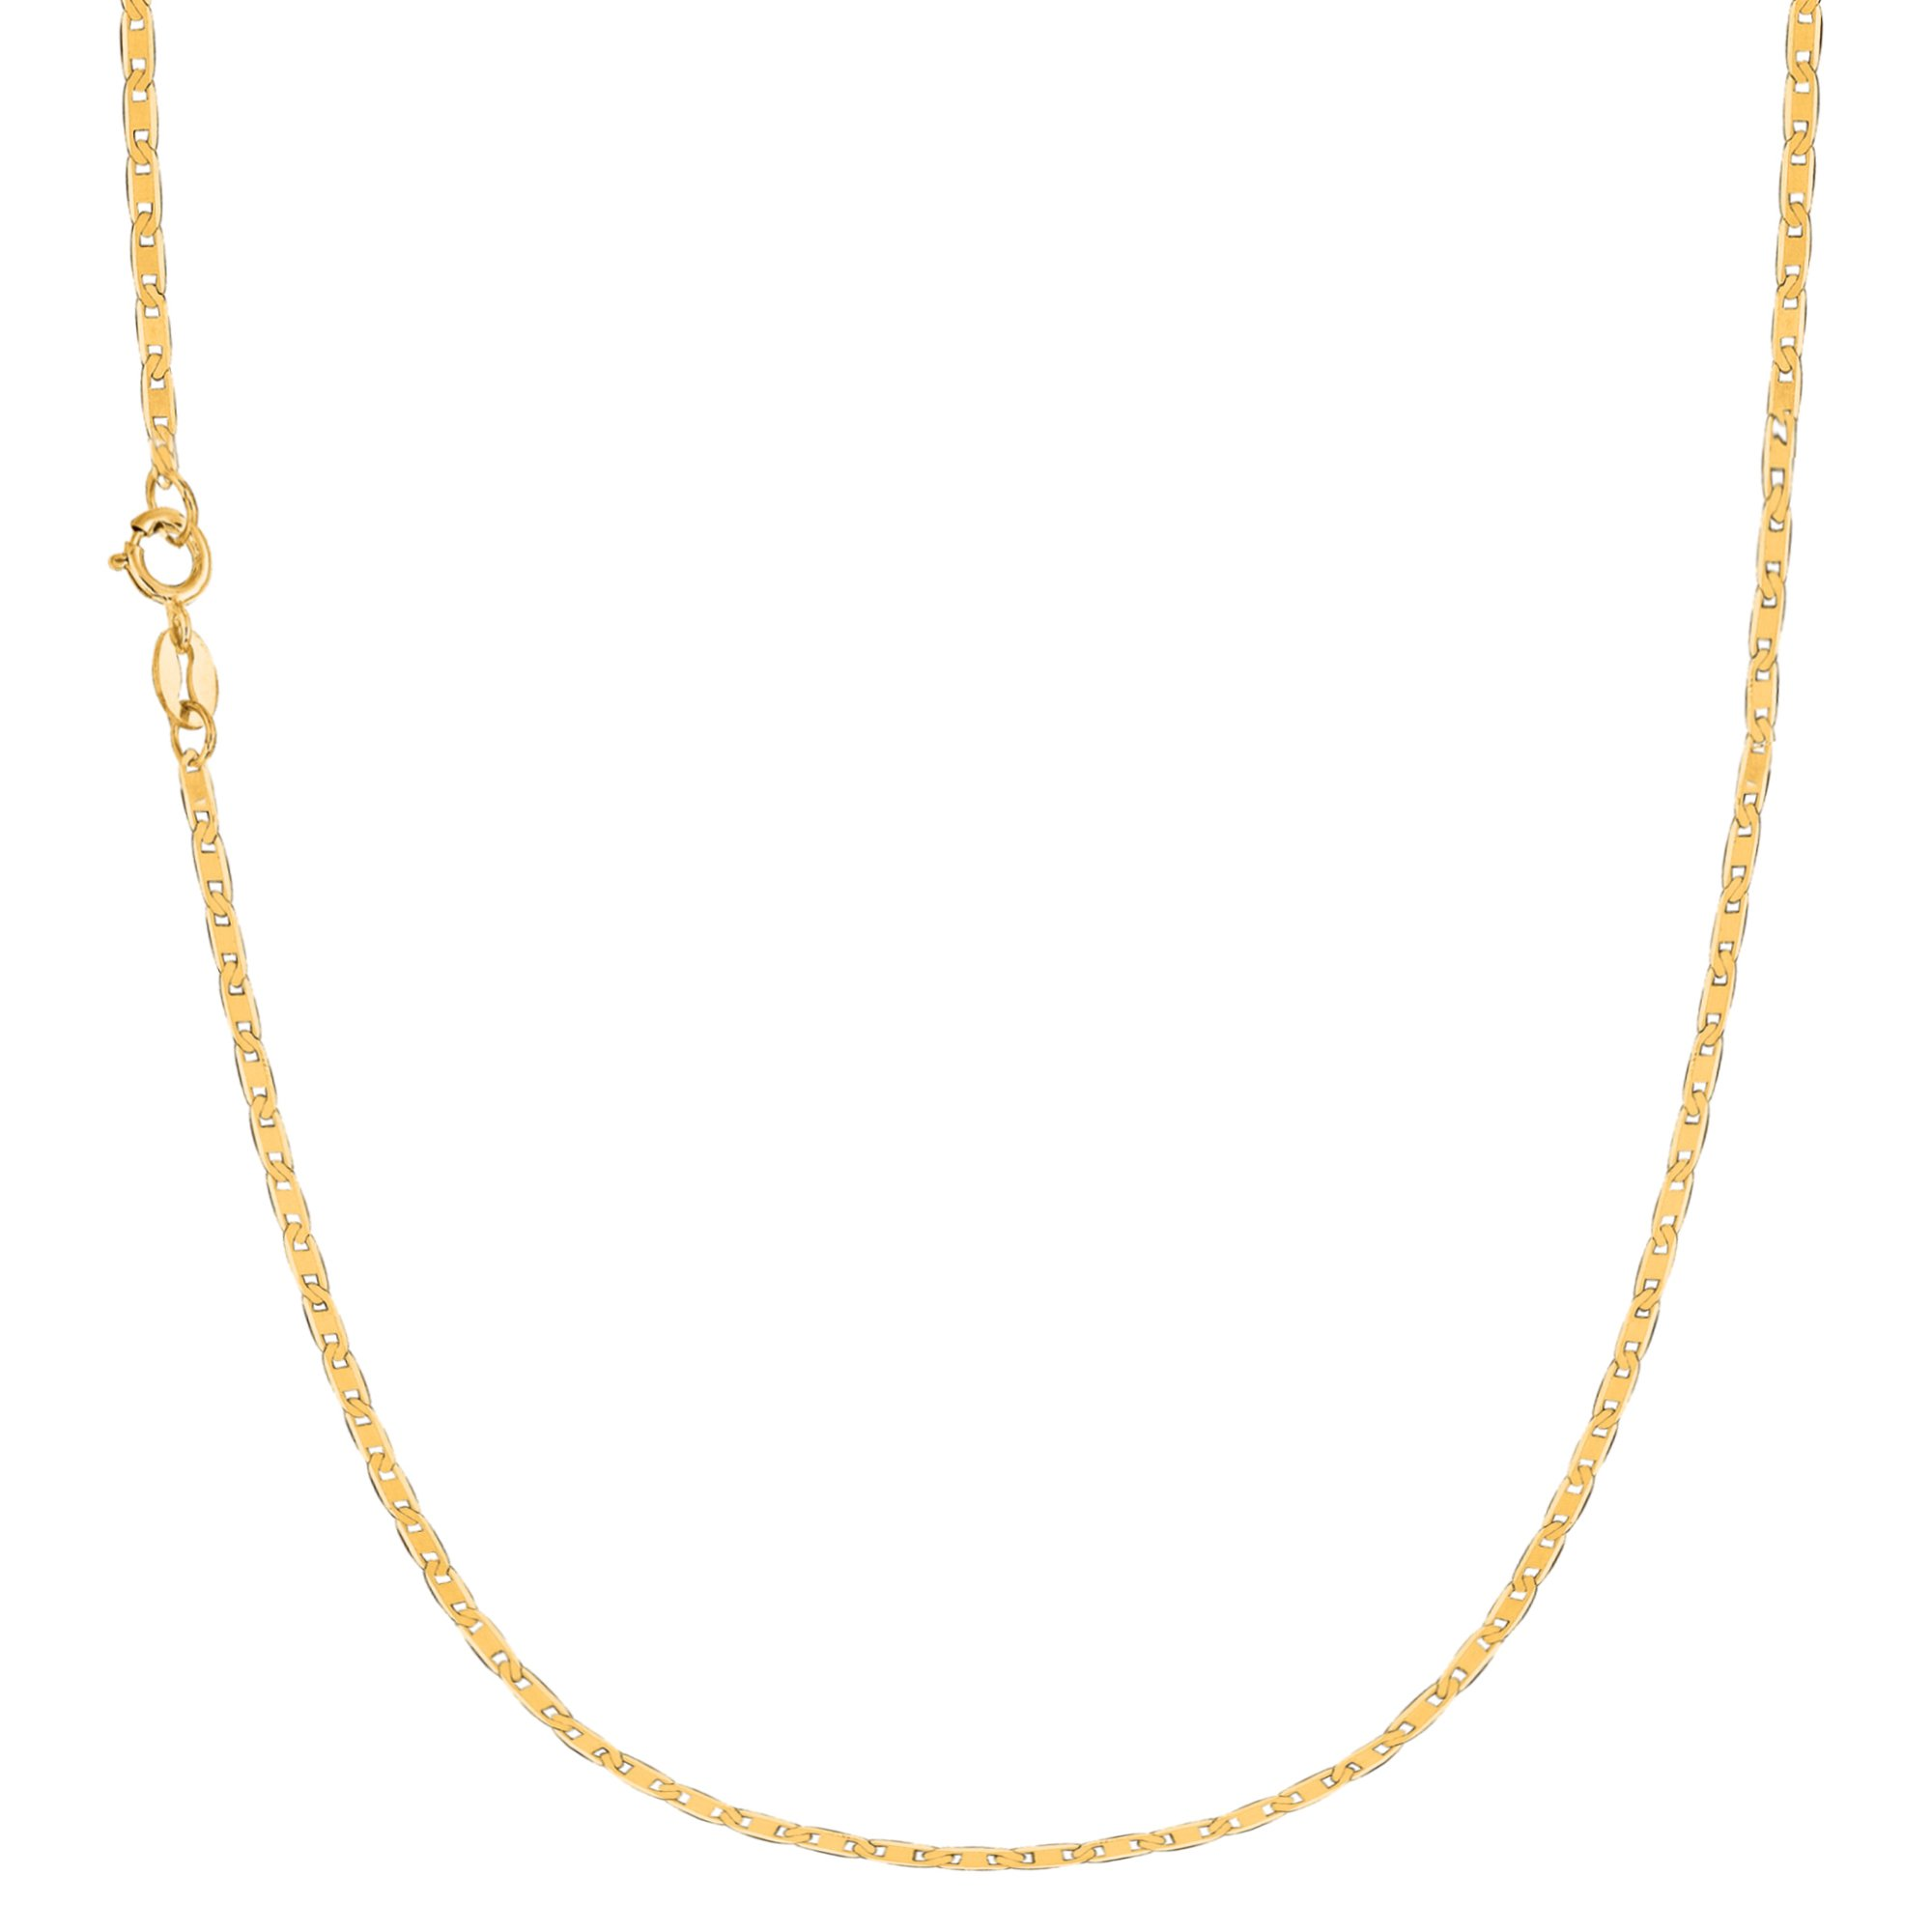 10k Solid Yellow Gold Mariner Link Chain 18 Inches